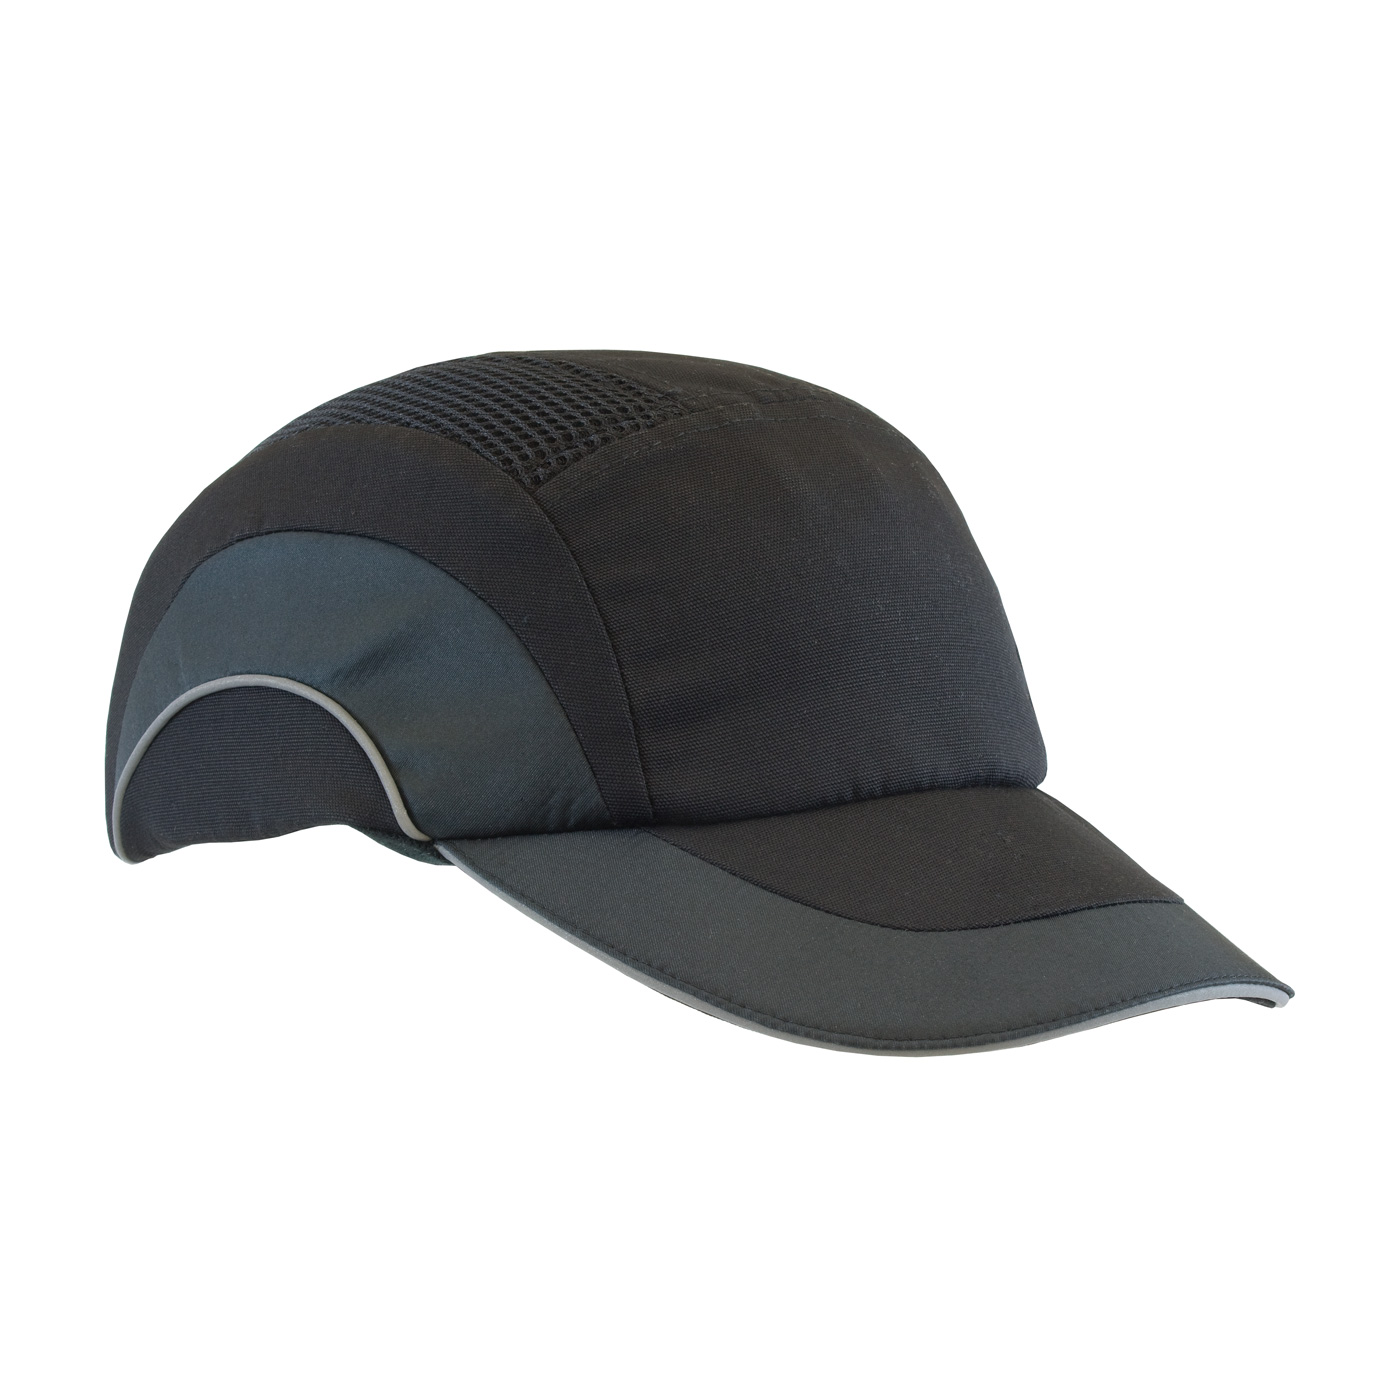 Baseball Style Bump Cap with HDPE Protective Liner and Adjustable Back, Black, OS